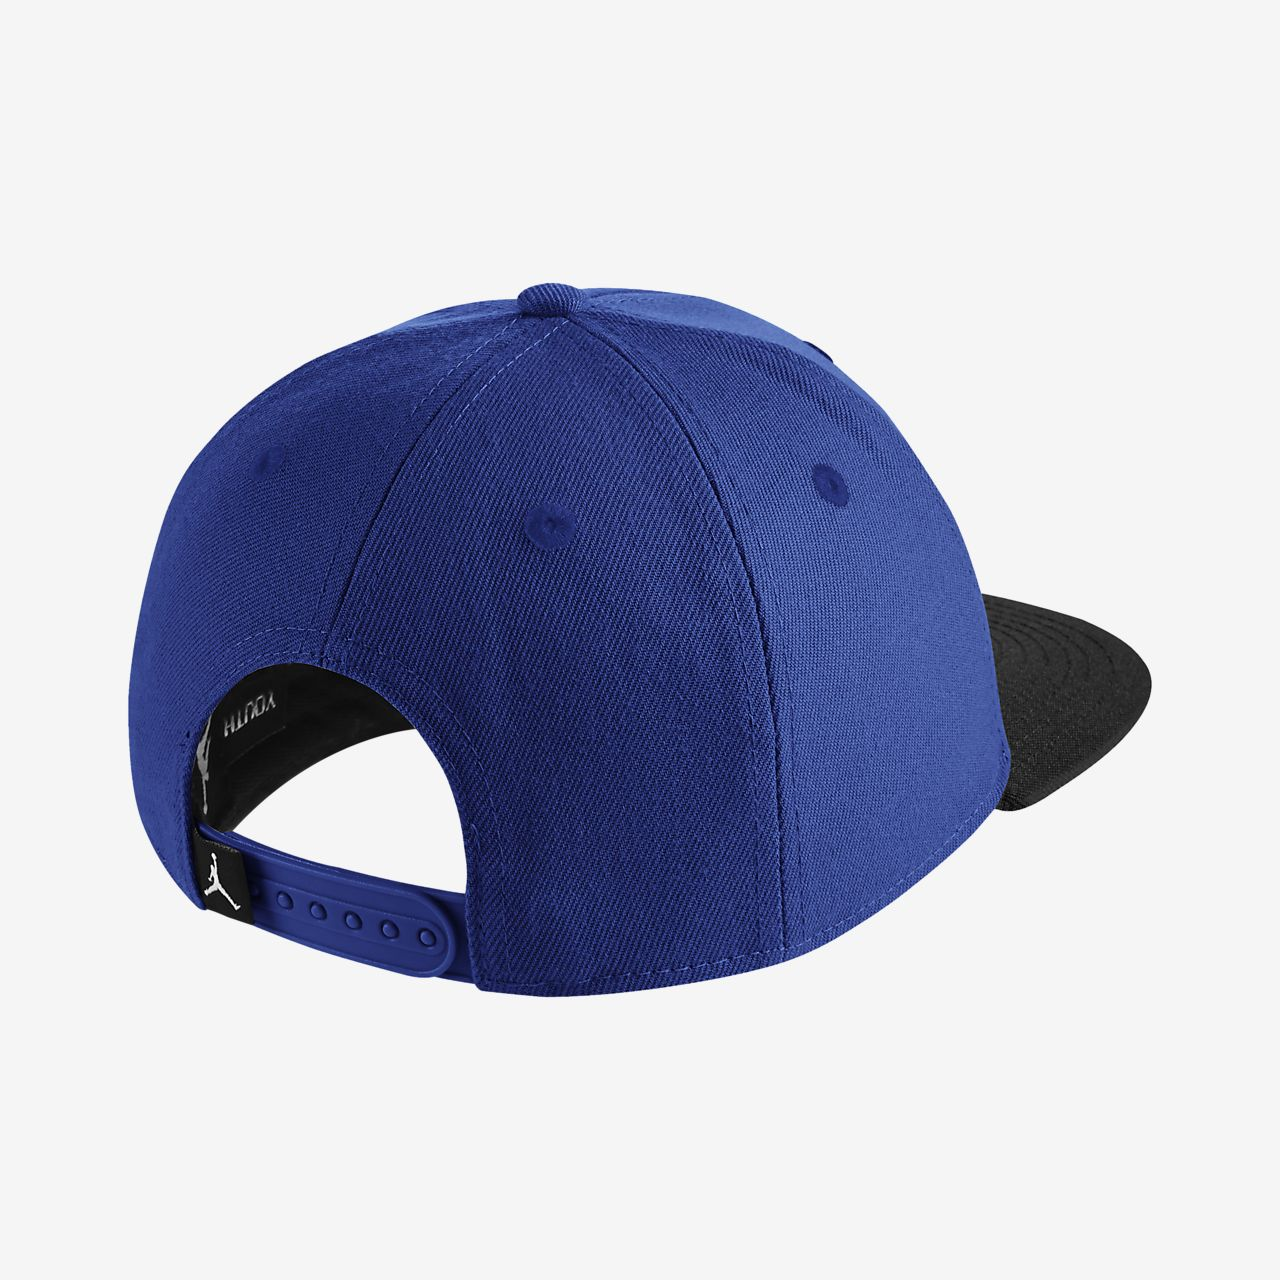 eddc27c5f36 Jordan Jumpman Kids  Adjustable Hat. Nike.com GB